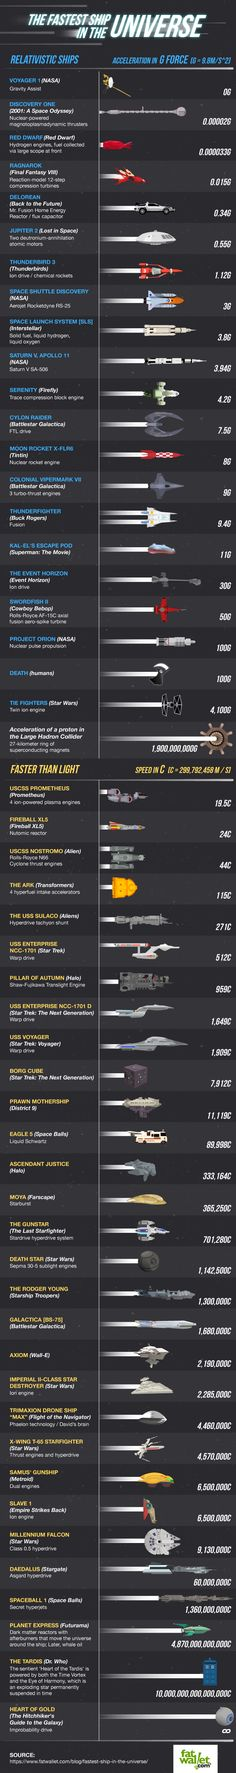 The Fastest Ship in the Universe : How Sci-Fi Ships Stack Up